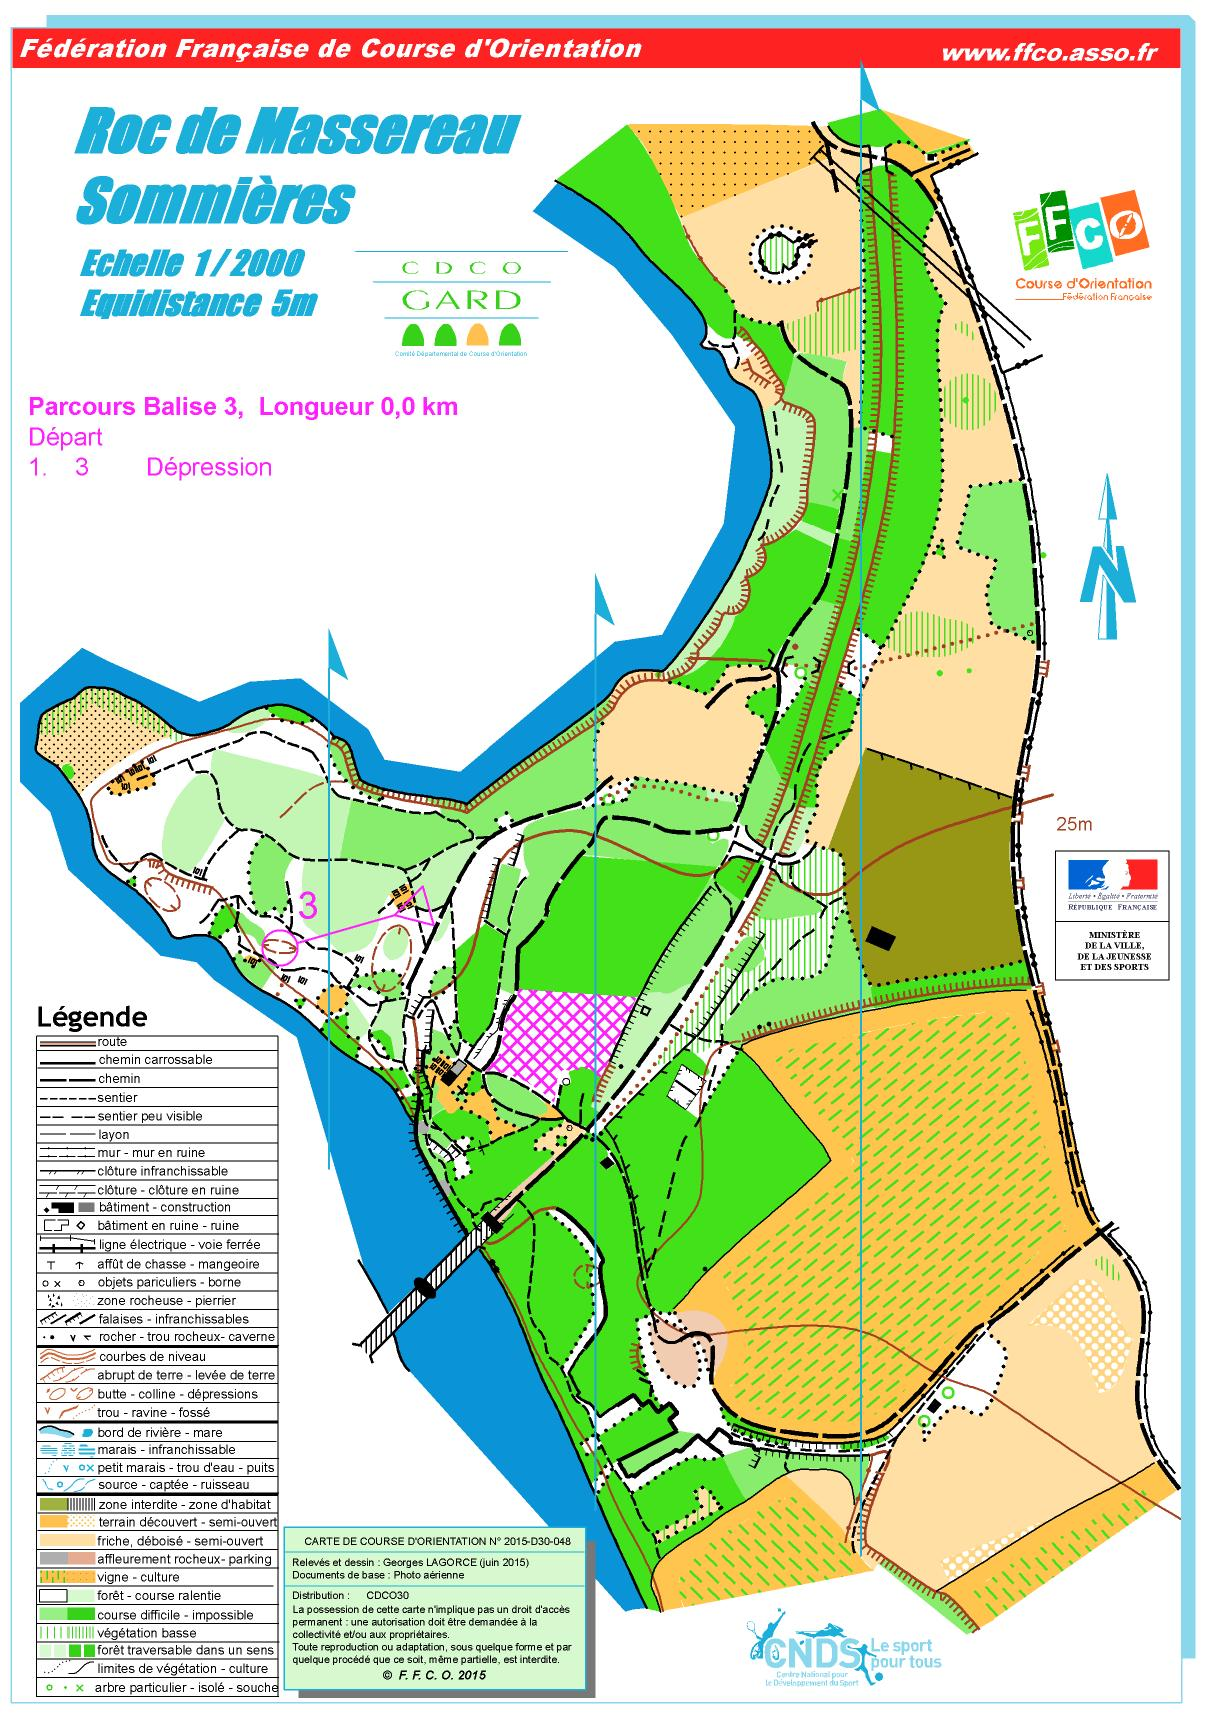 carte course d orientation Orientation race – Le Roc de Massereau